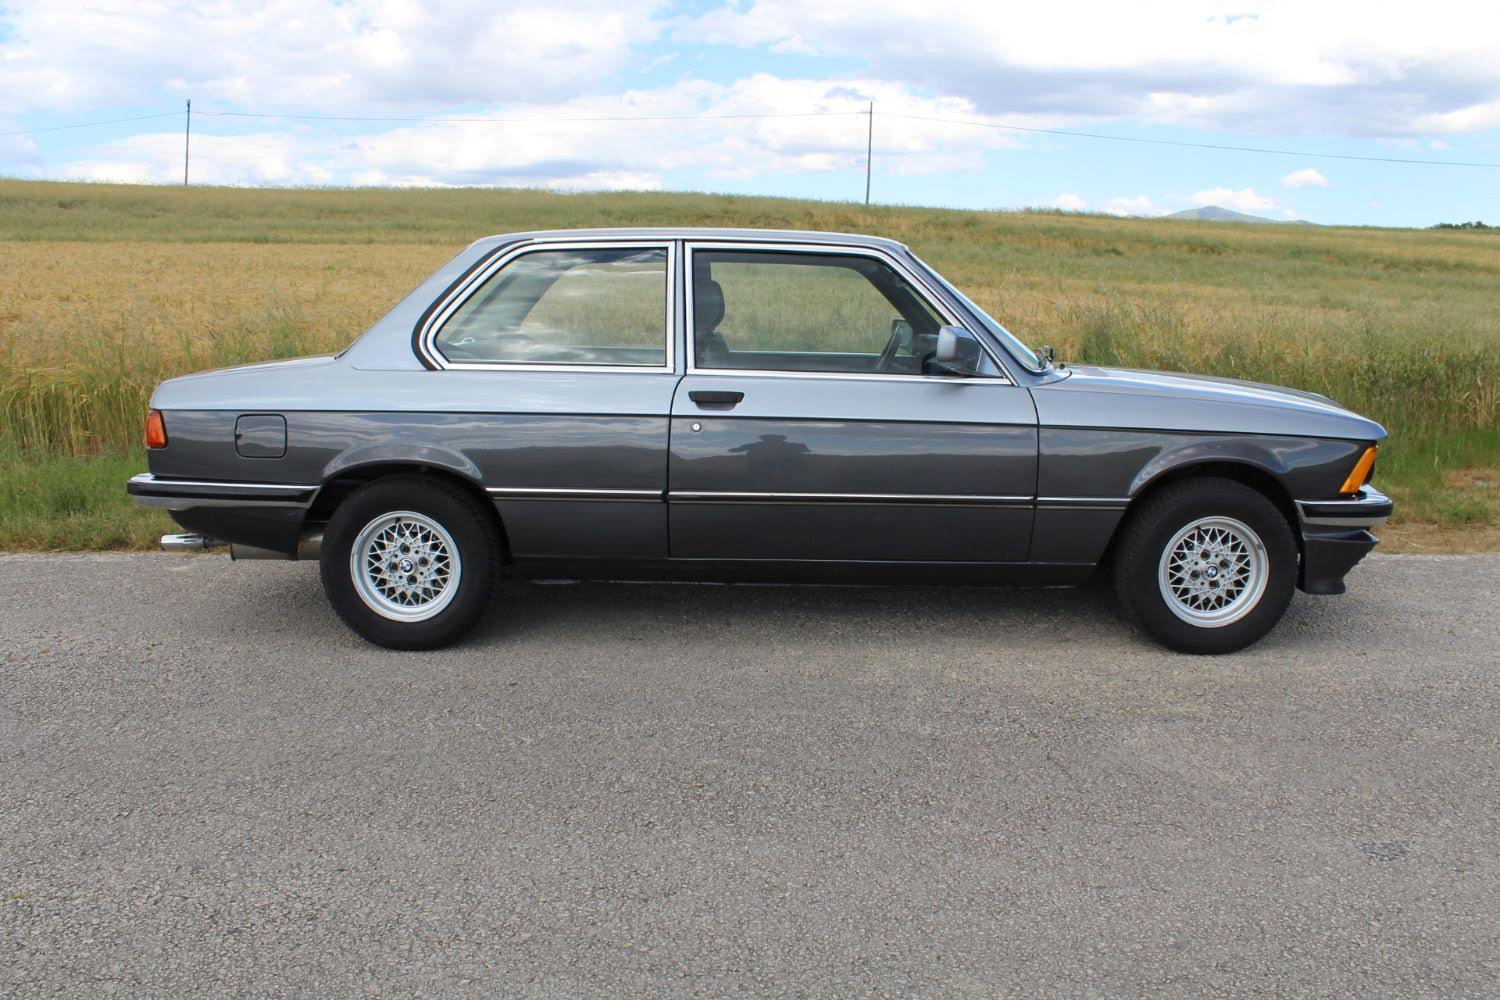 BMW E21 323i EDITIONS S BICOLOR 1982